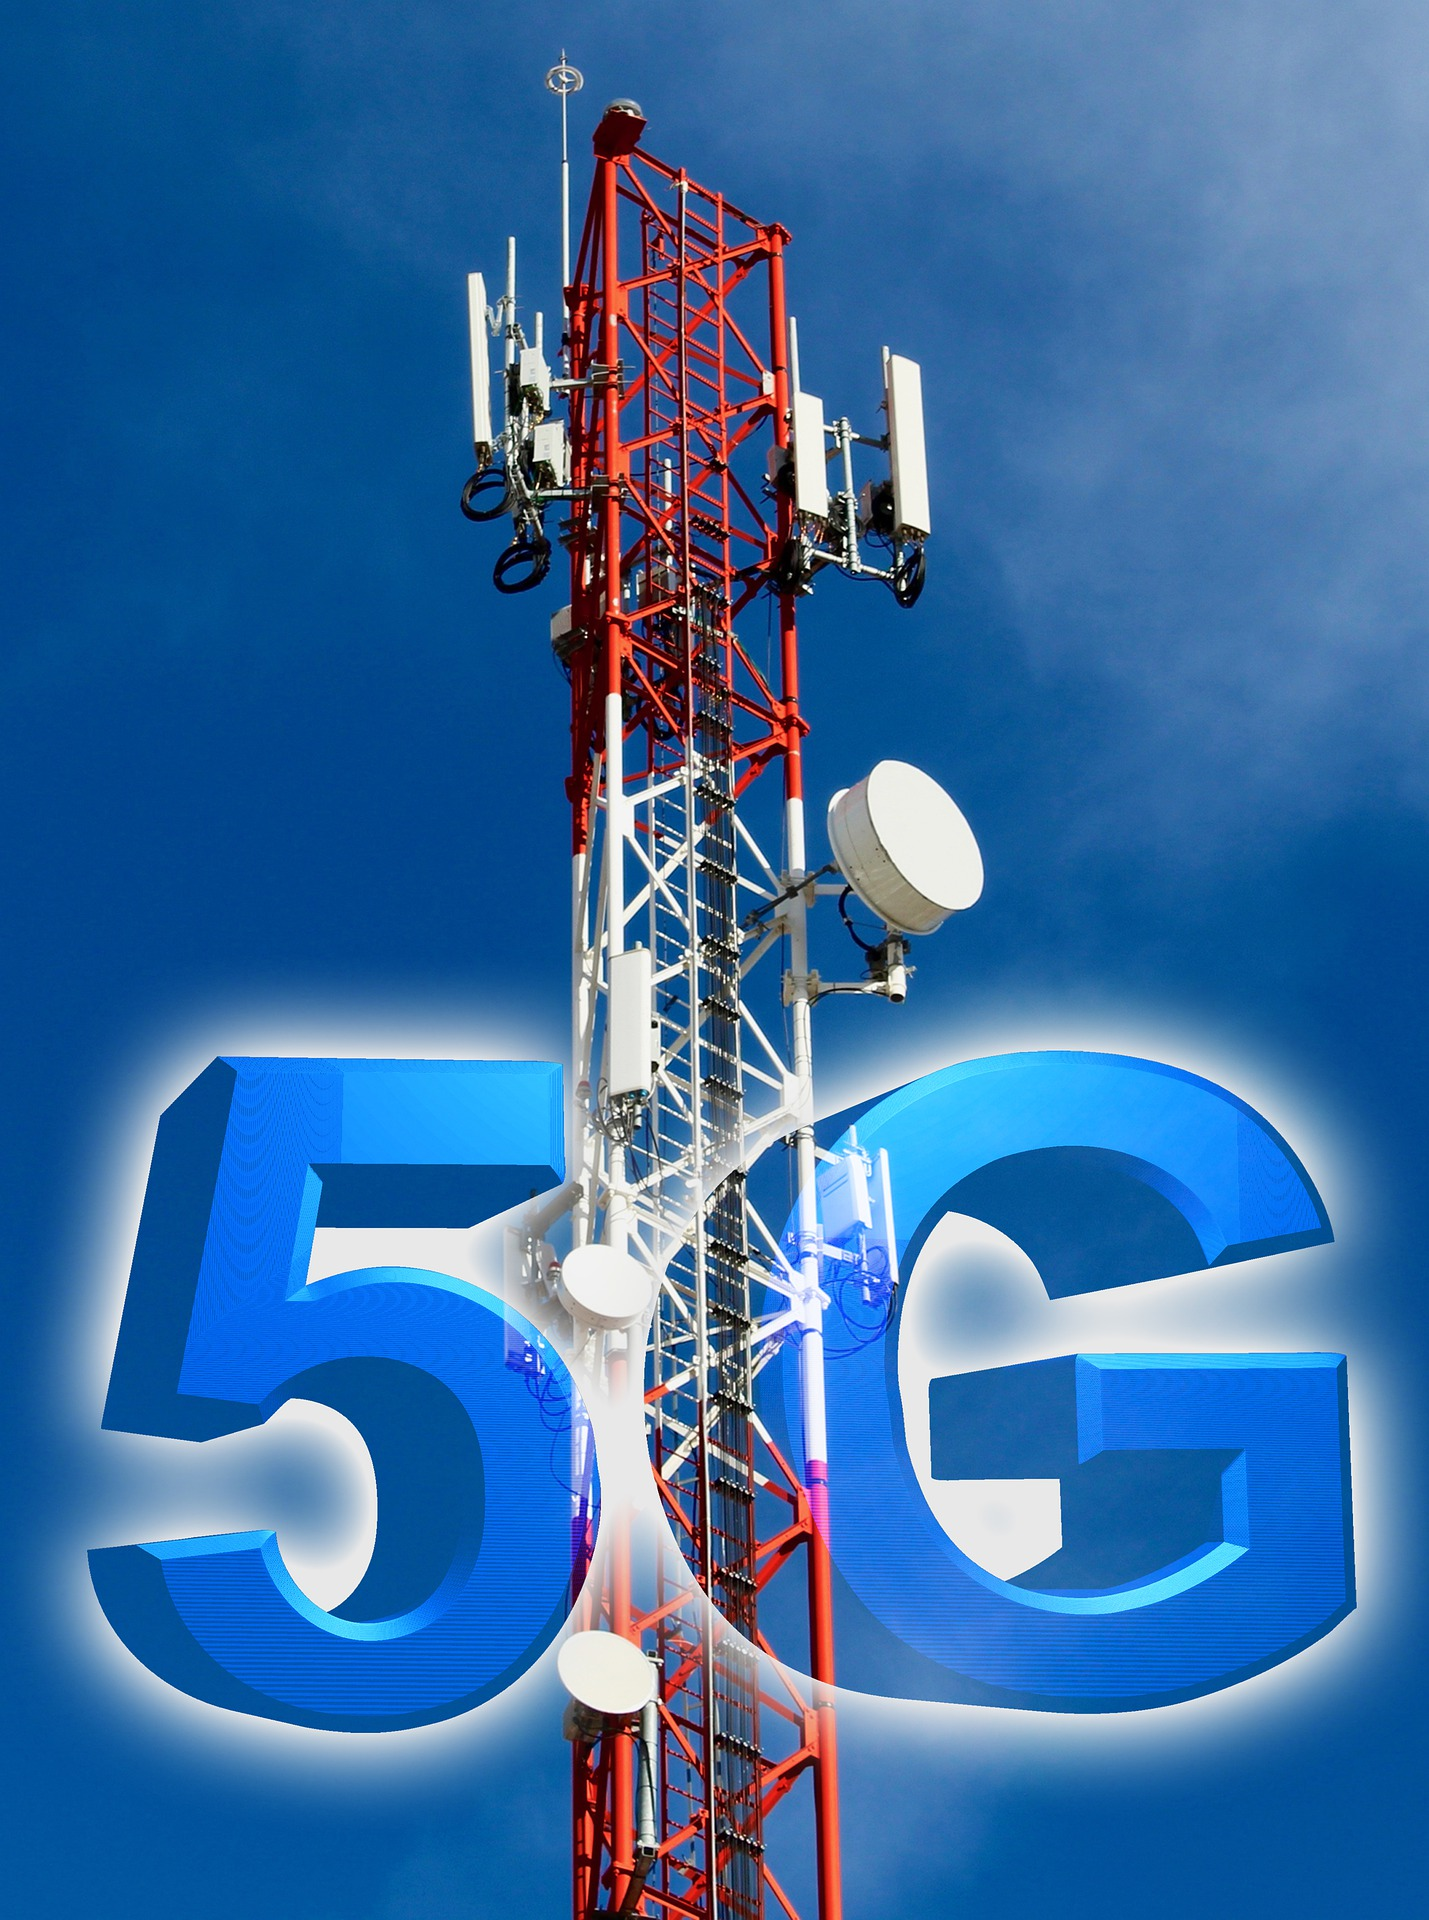 the conspiracy theories about 5G and covid-19 that led to the burning of cell phone masts in the United Kingdom